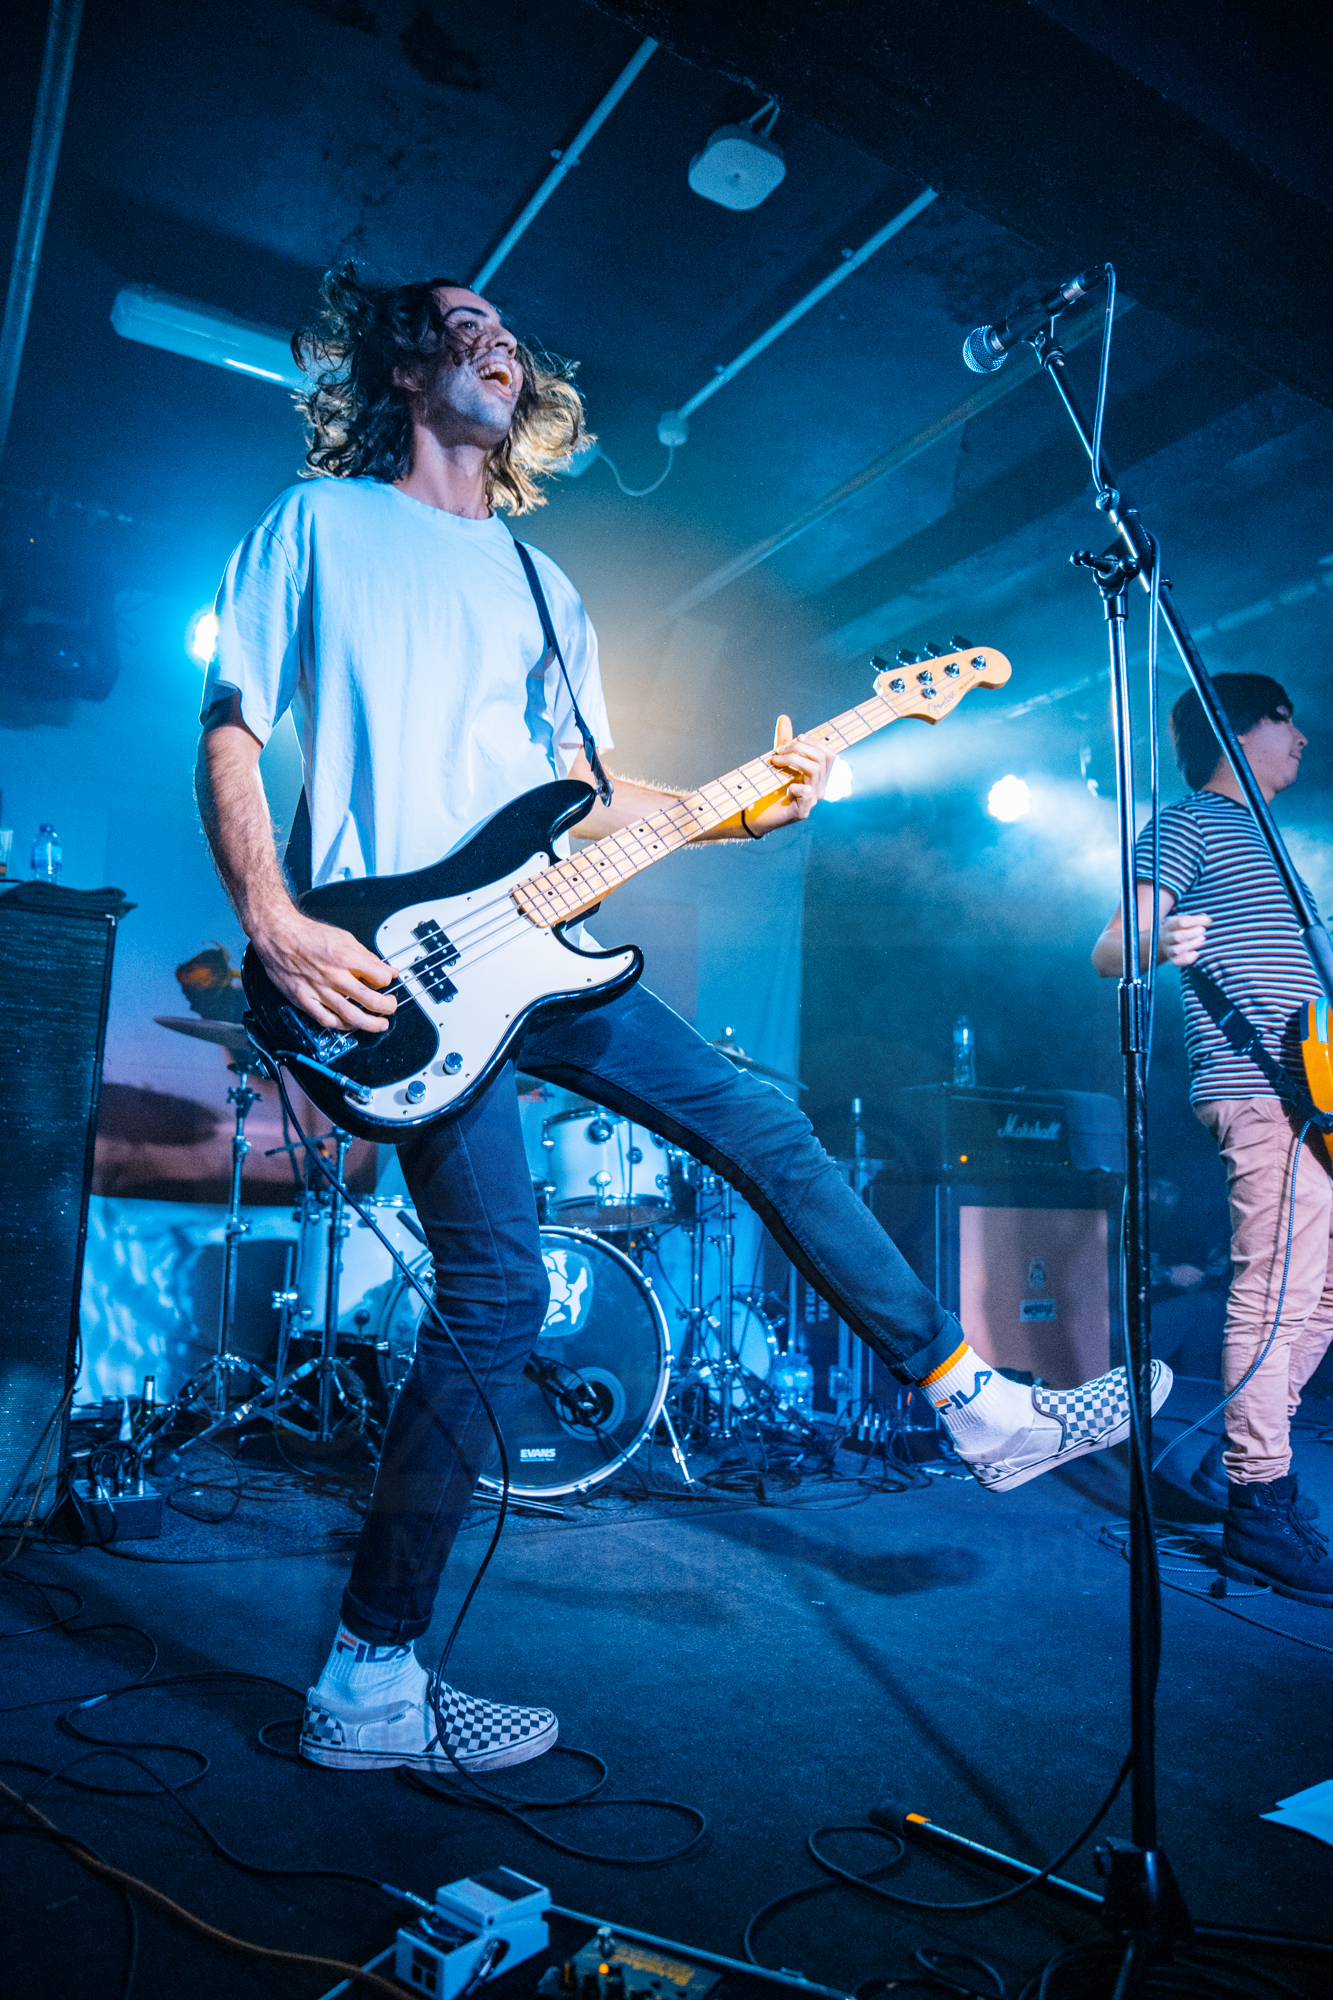 3-WithConfidence-ManchesterAcademy3-26-9-19.jpg